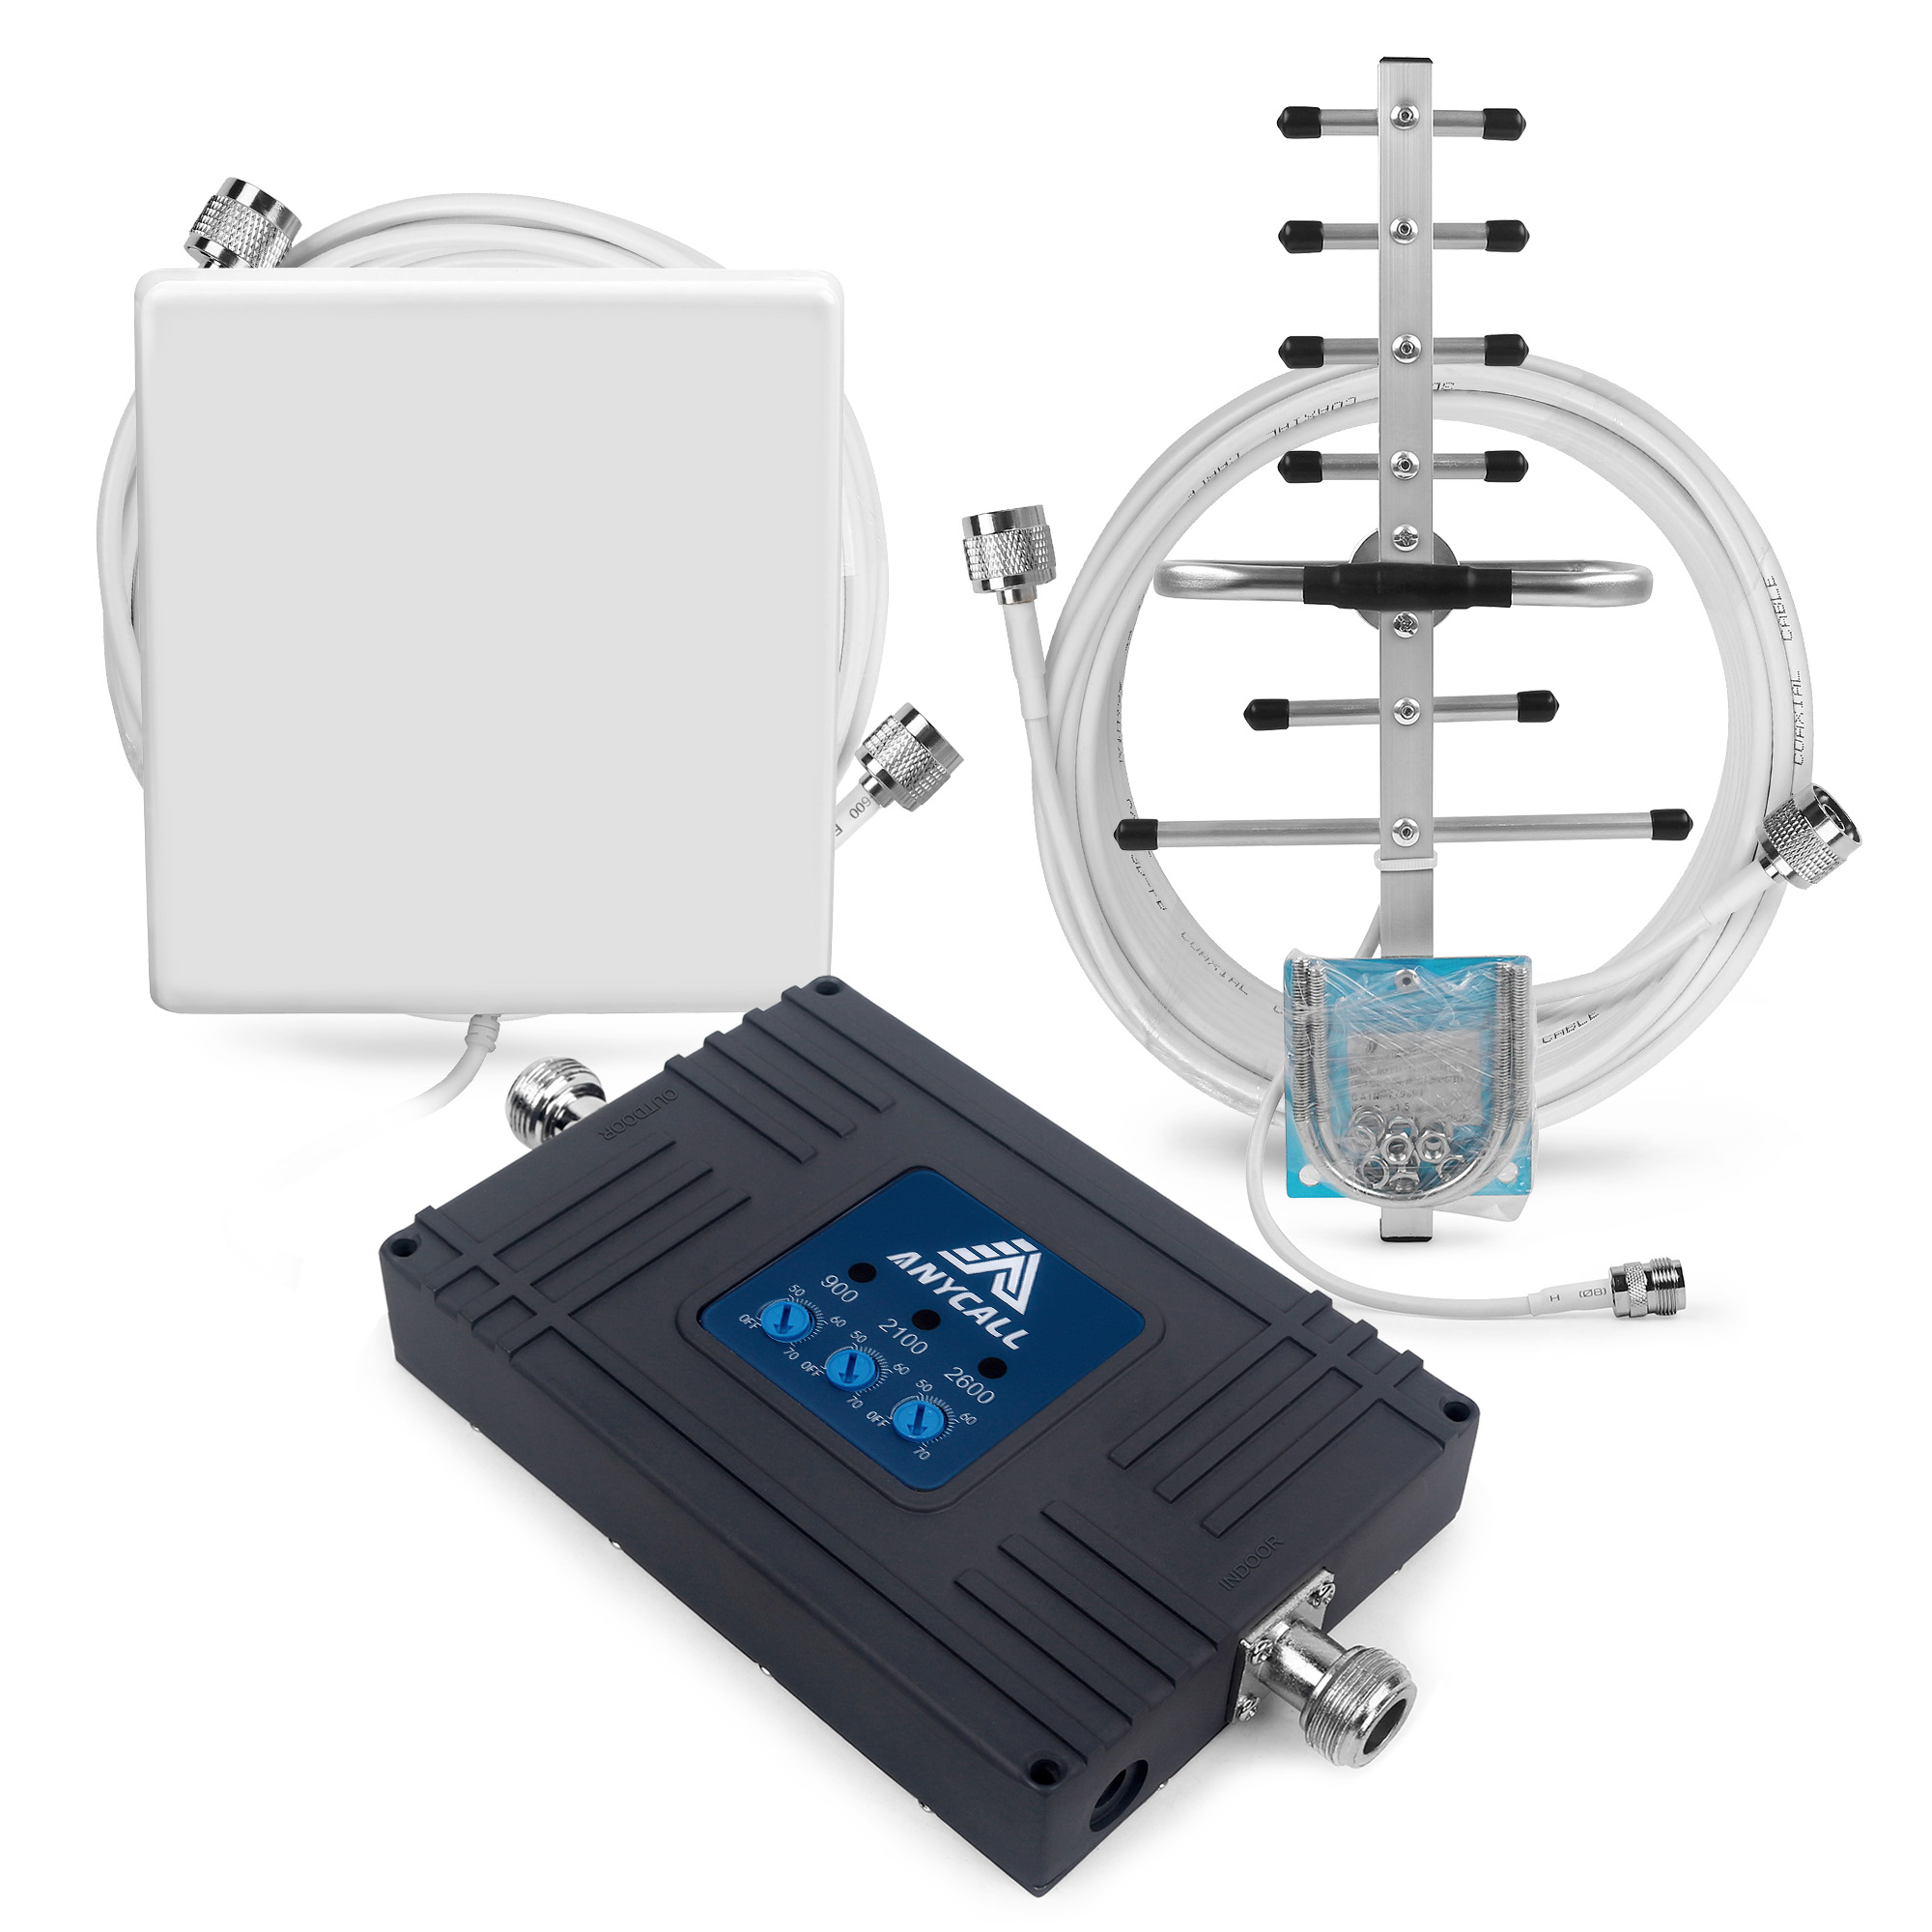 Mobile Amplifier 2G 3G 4G Cellular Signal Booster GSM LTE 900/2100/2600 MHz Band 8/1/7 Cell Phone Signal Repeater For Voice/Data